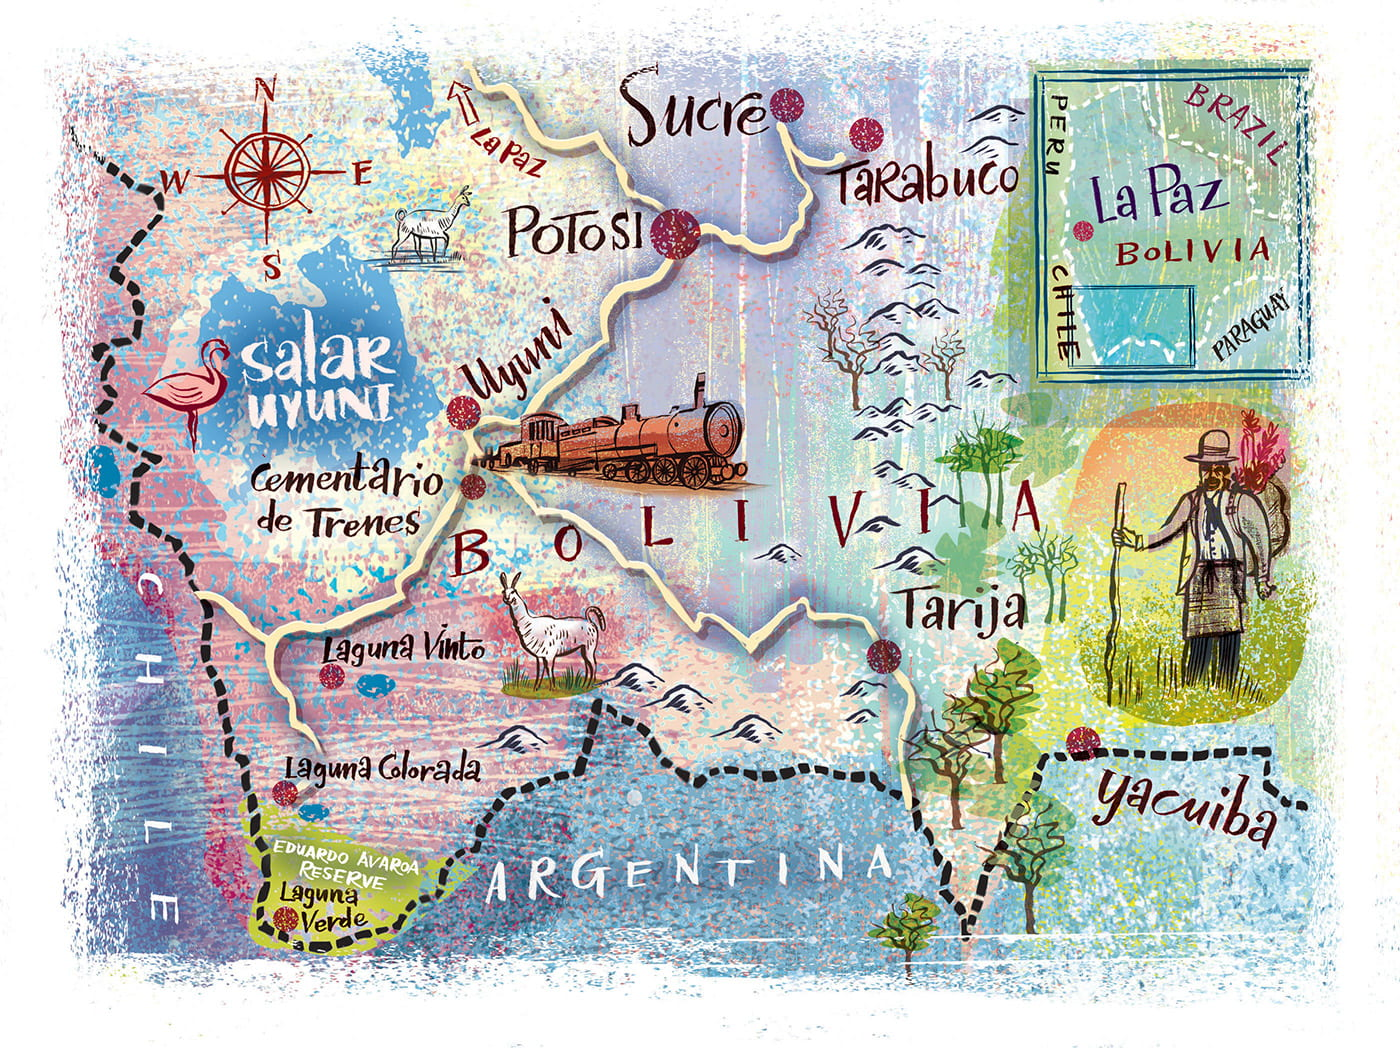 5. National Geographic: Illustrated map of Bolivia